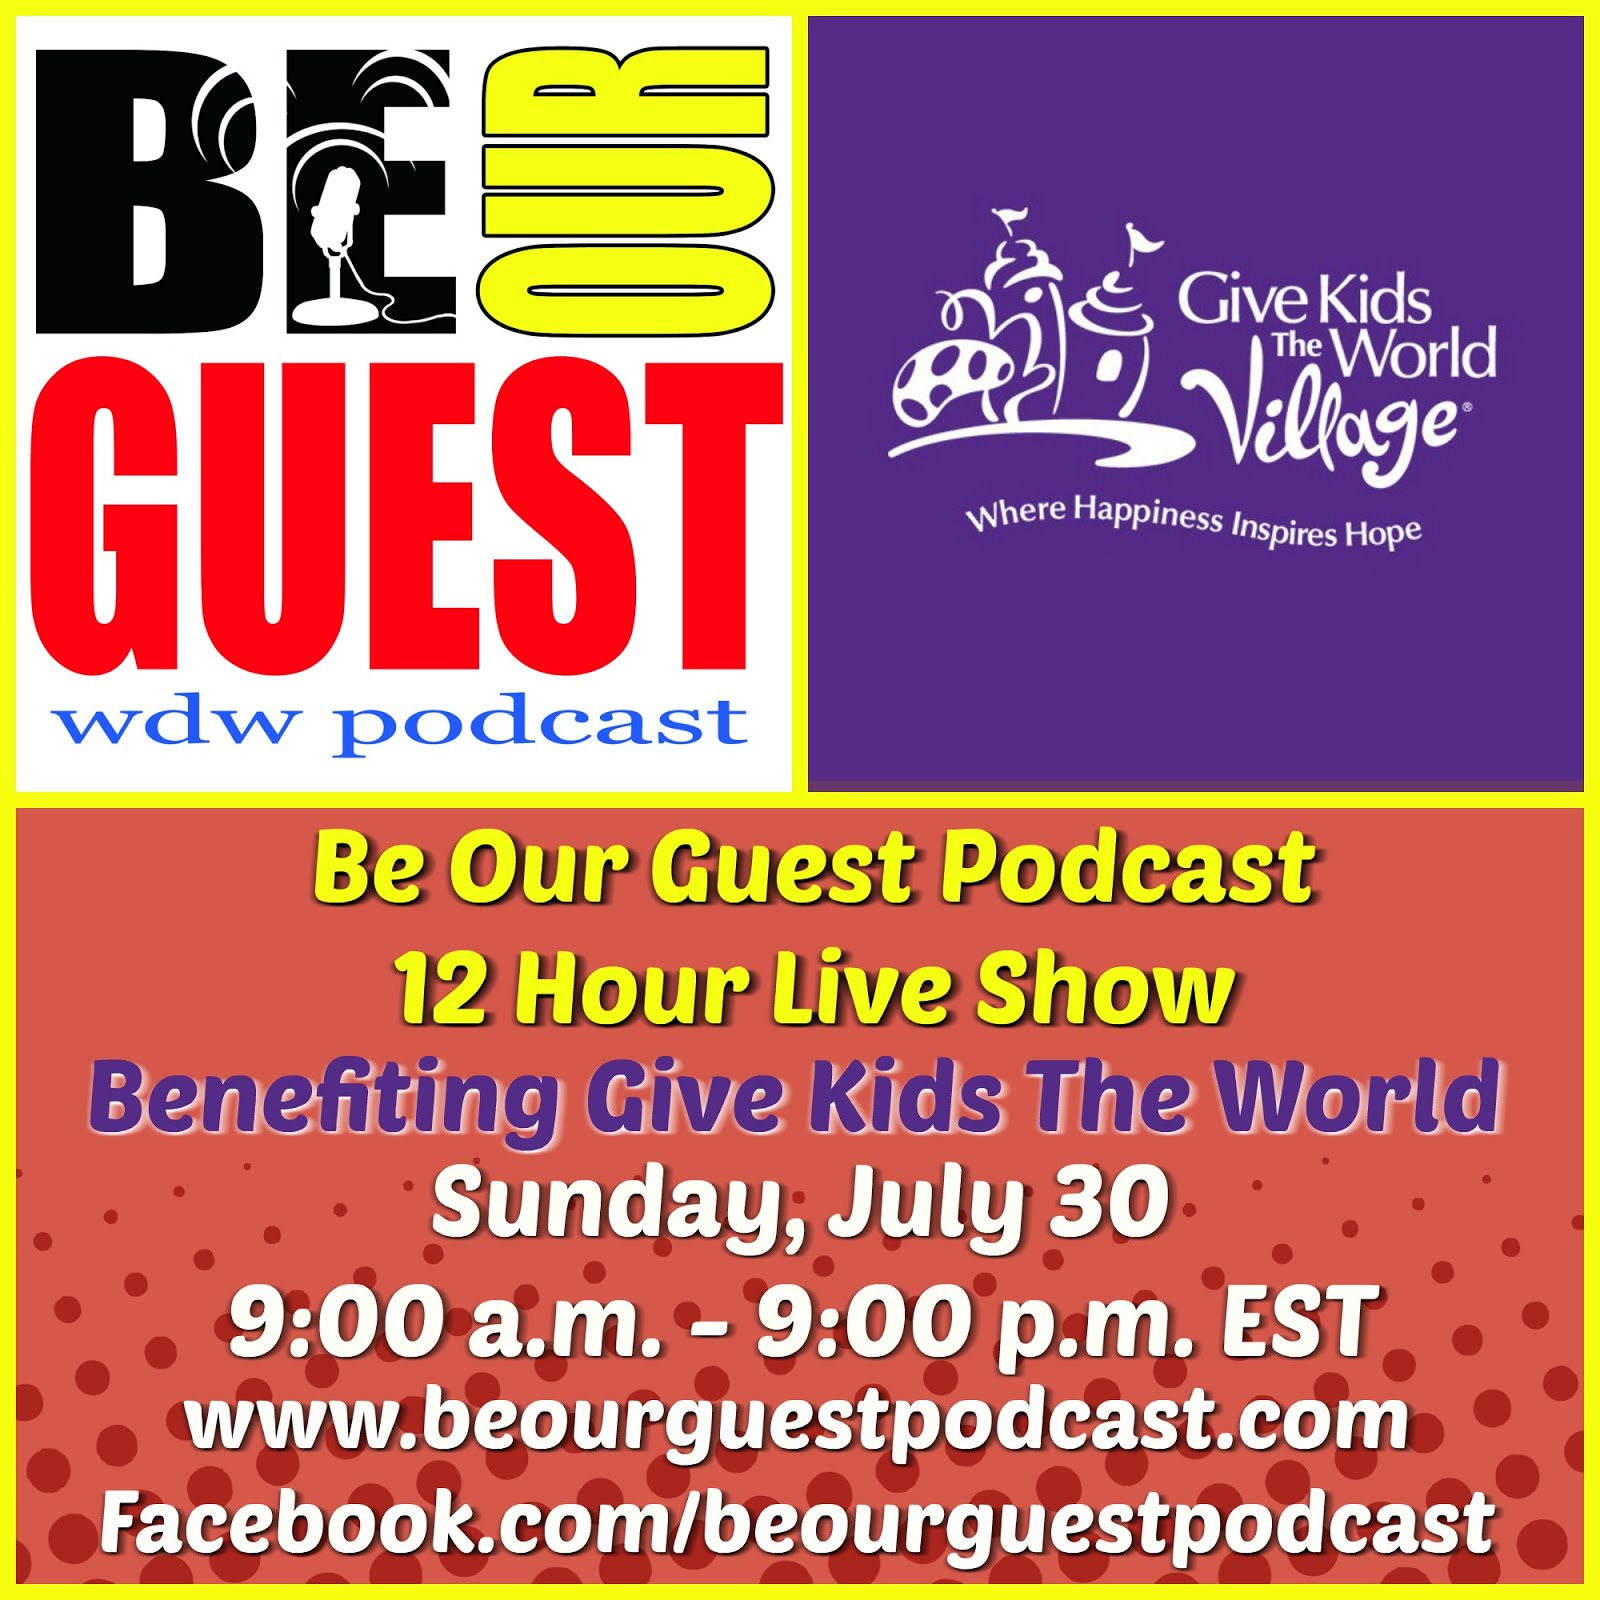 Click to Donate to the 2017 Be Our Guest Podcast 12 Hour Live Show Benefitting Give Kids the World!